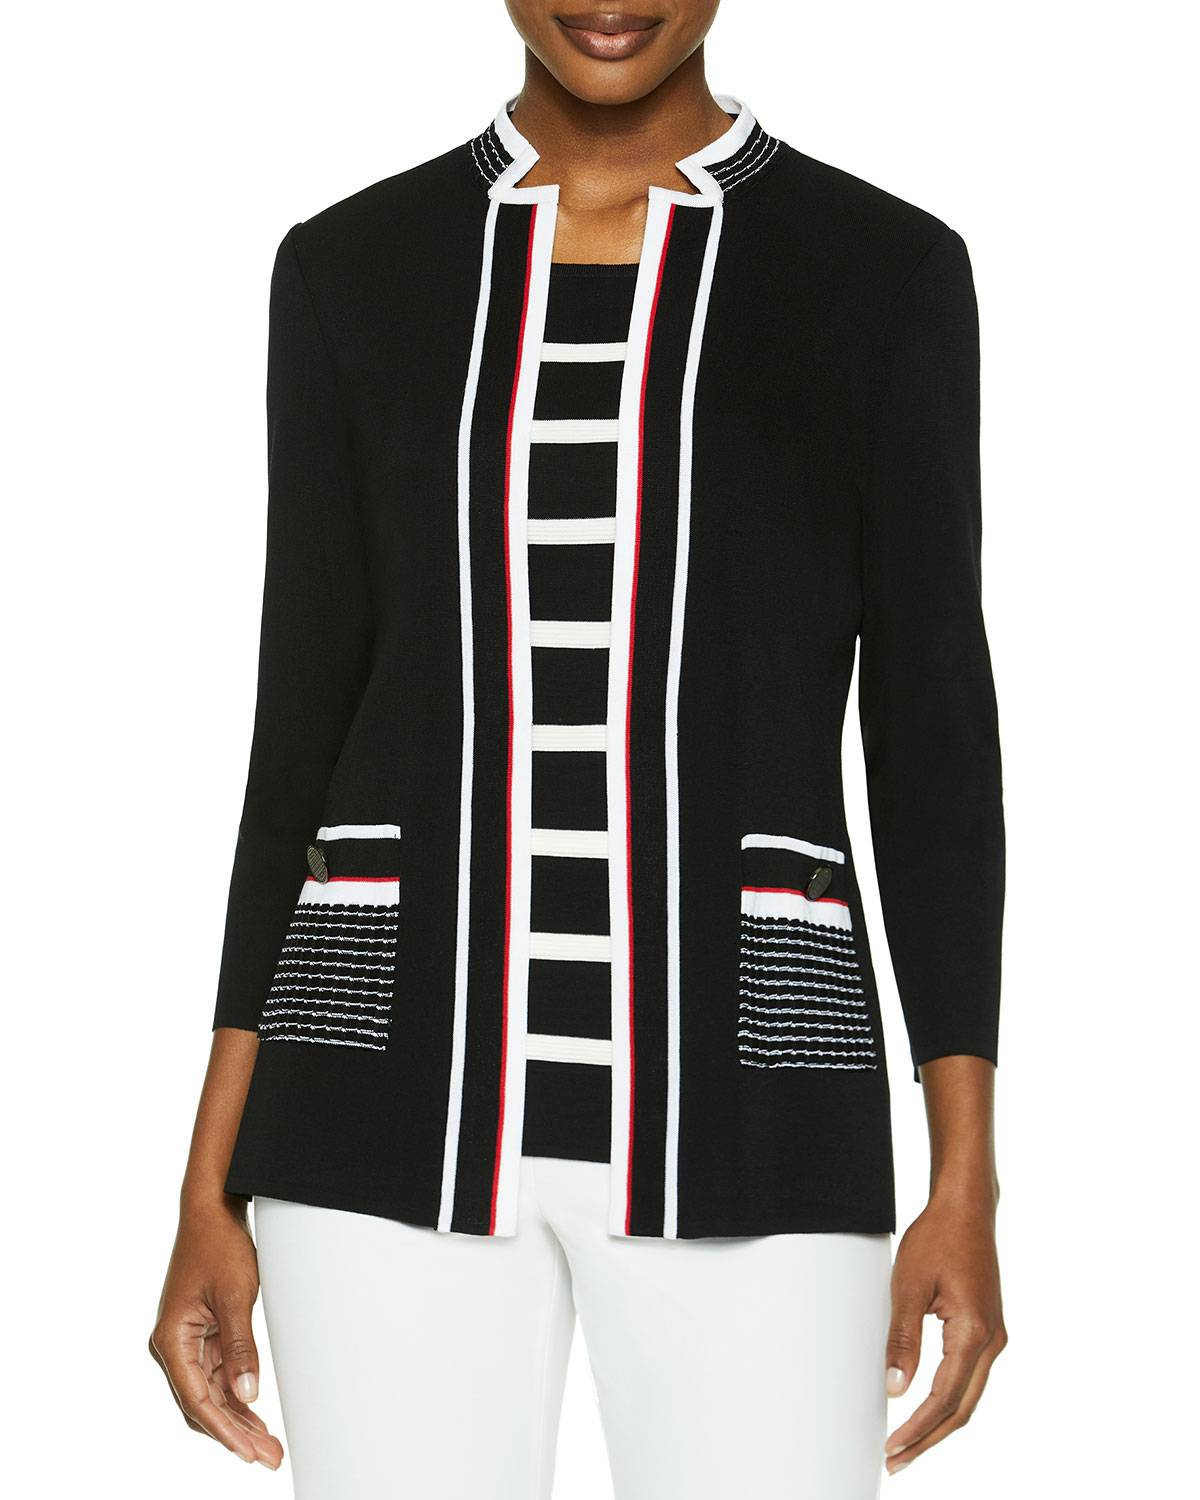 Misook Knit Jacket with Contrast Pockets - Size: Large